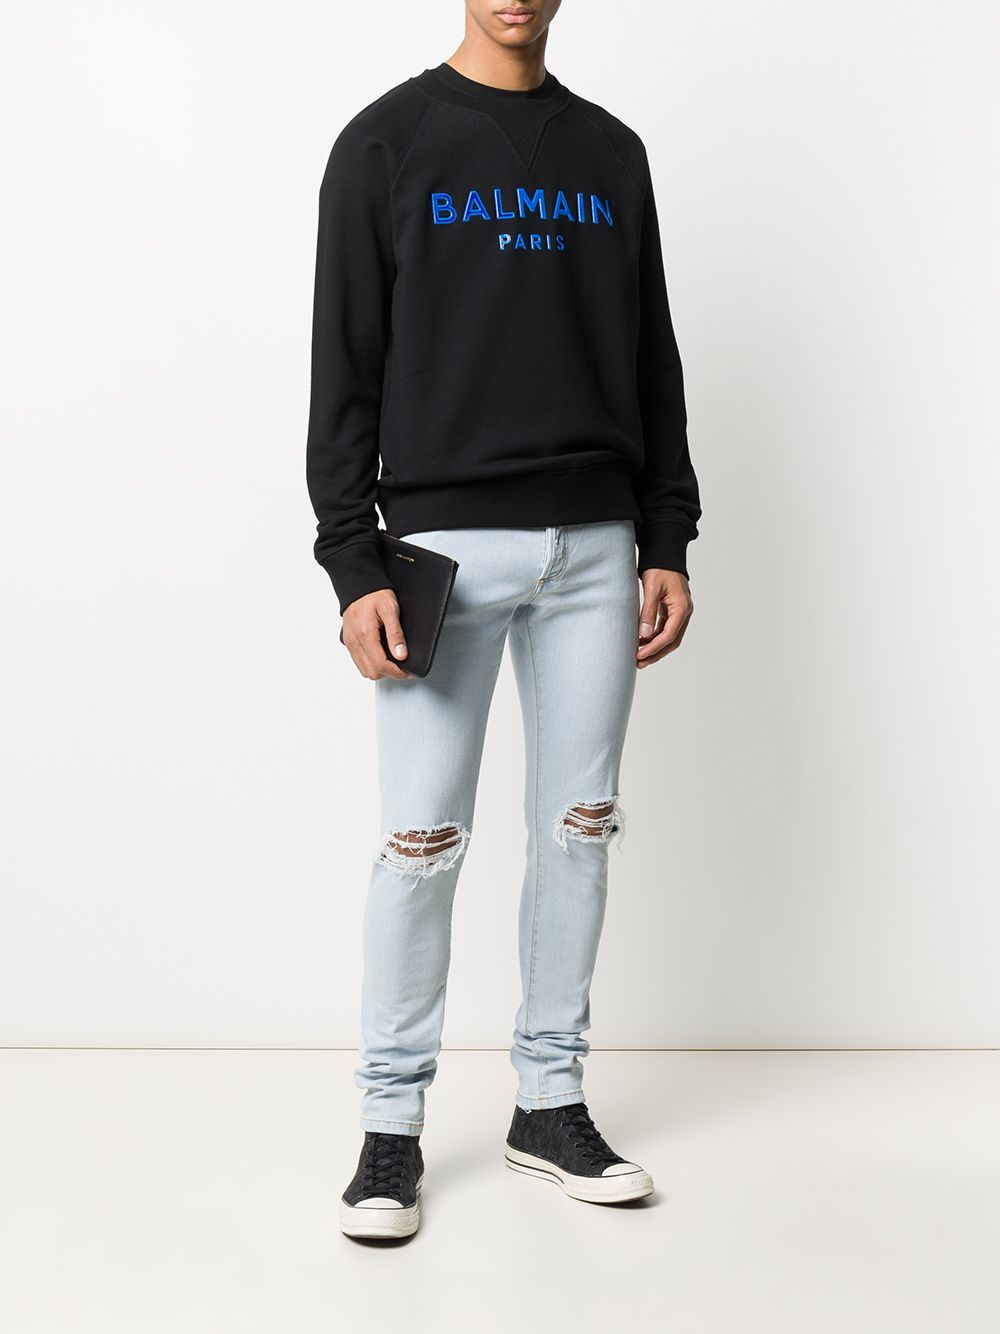 BALMAIN gel logo sweatshirt black/blue